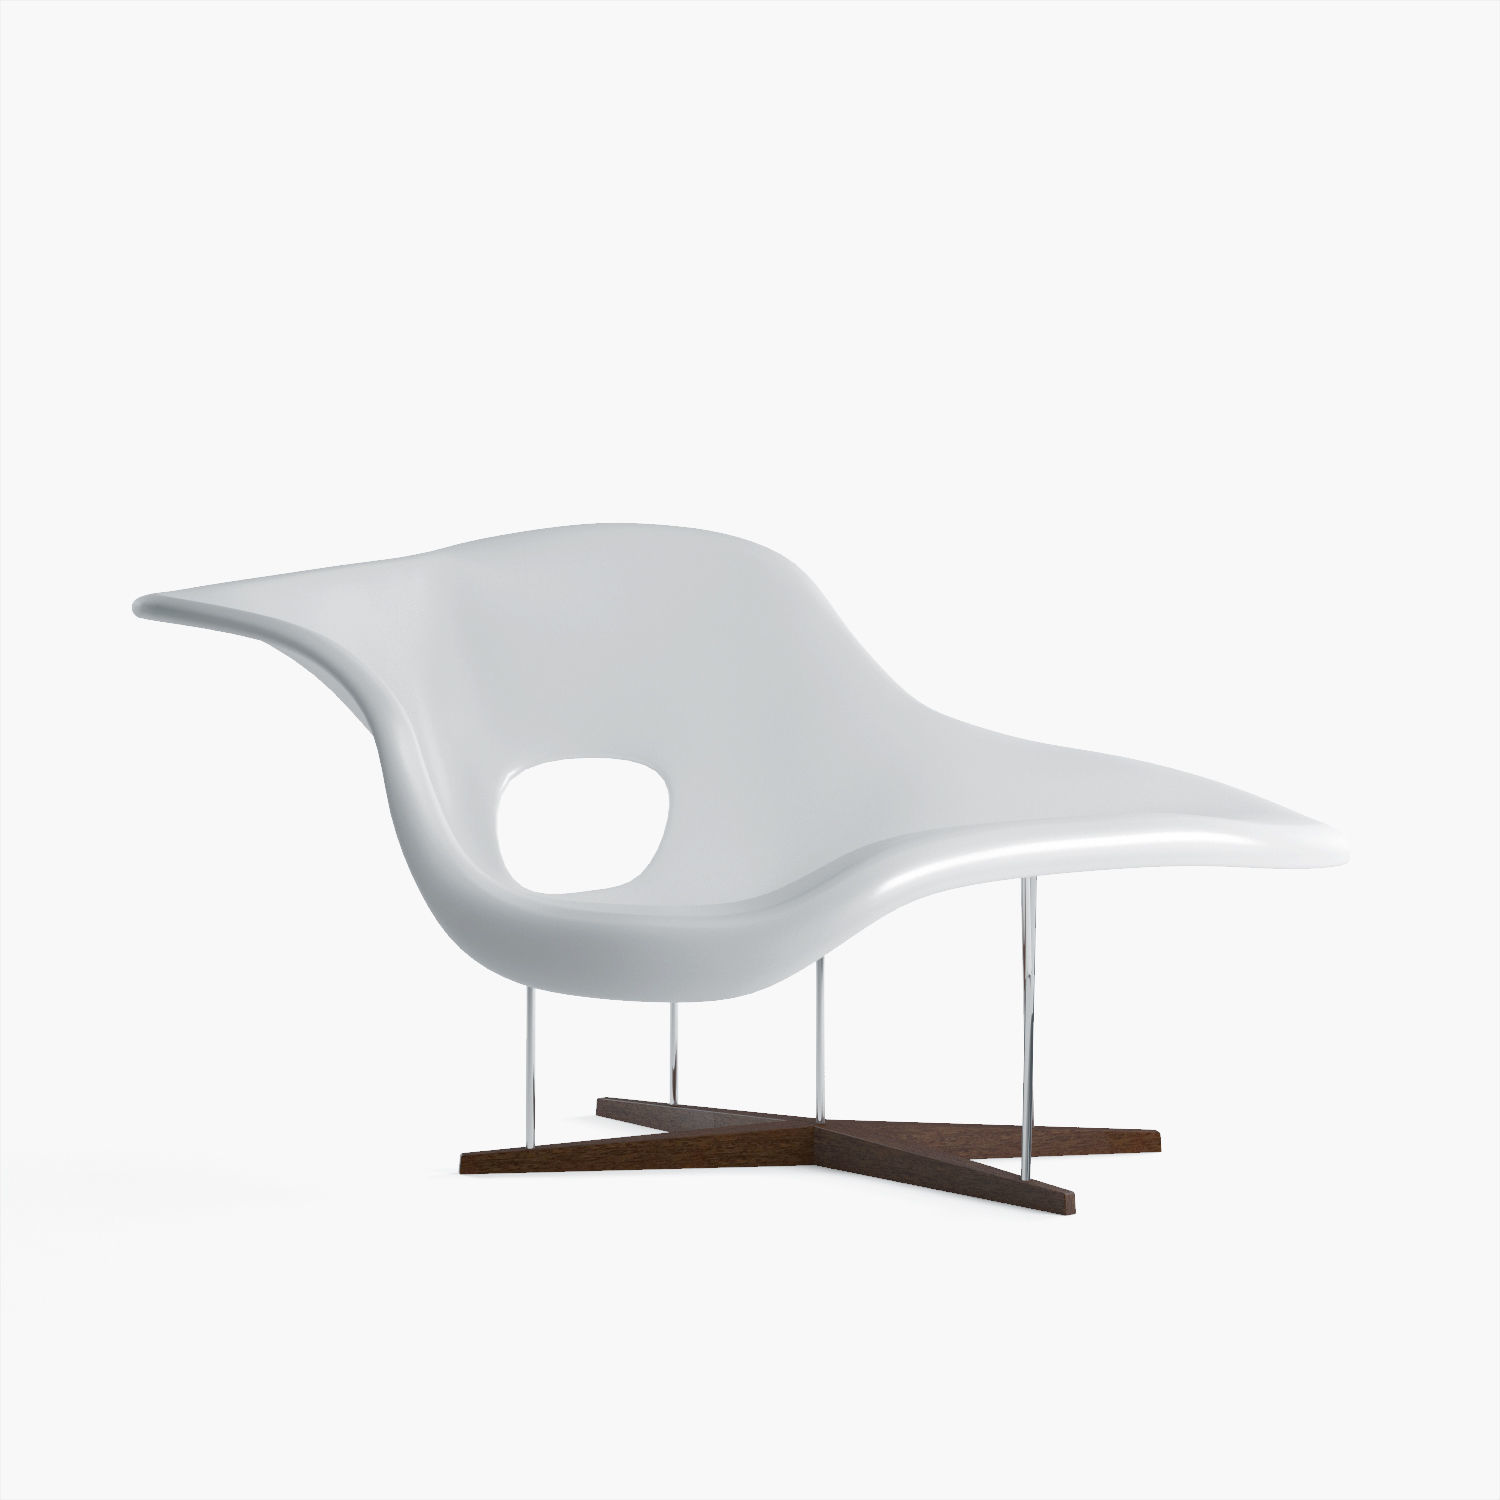 La Chaise Vitra Vmnwn80o 3dcgtrader WoQCrdexBE